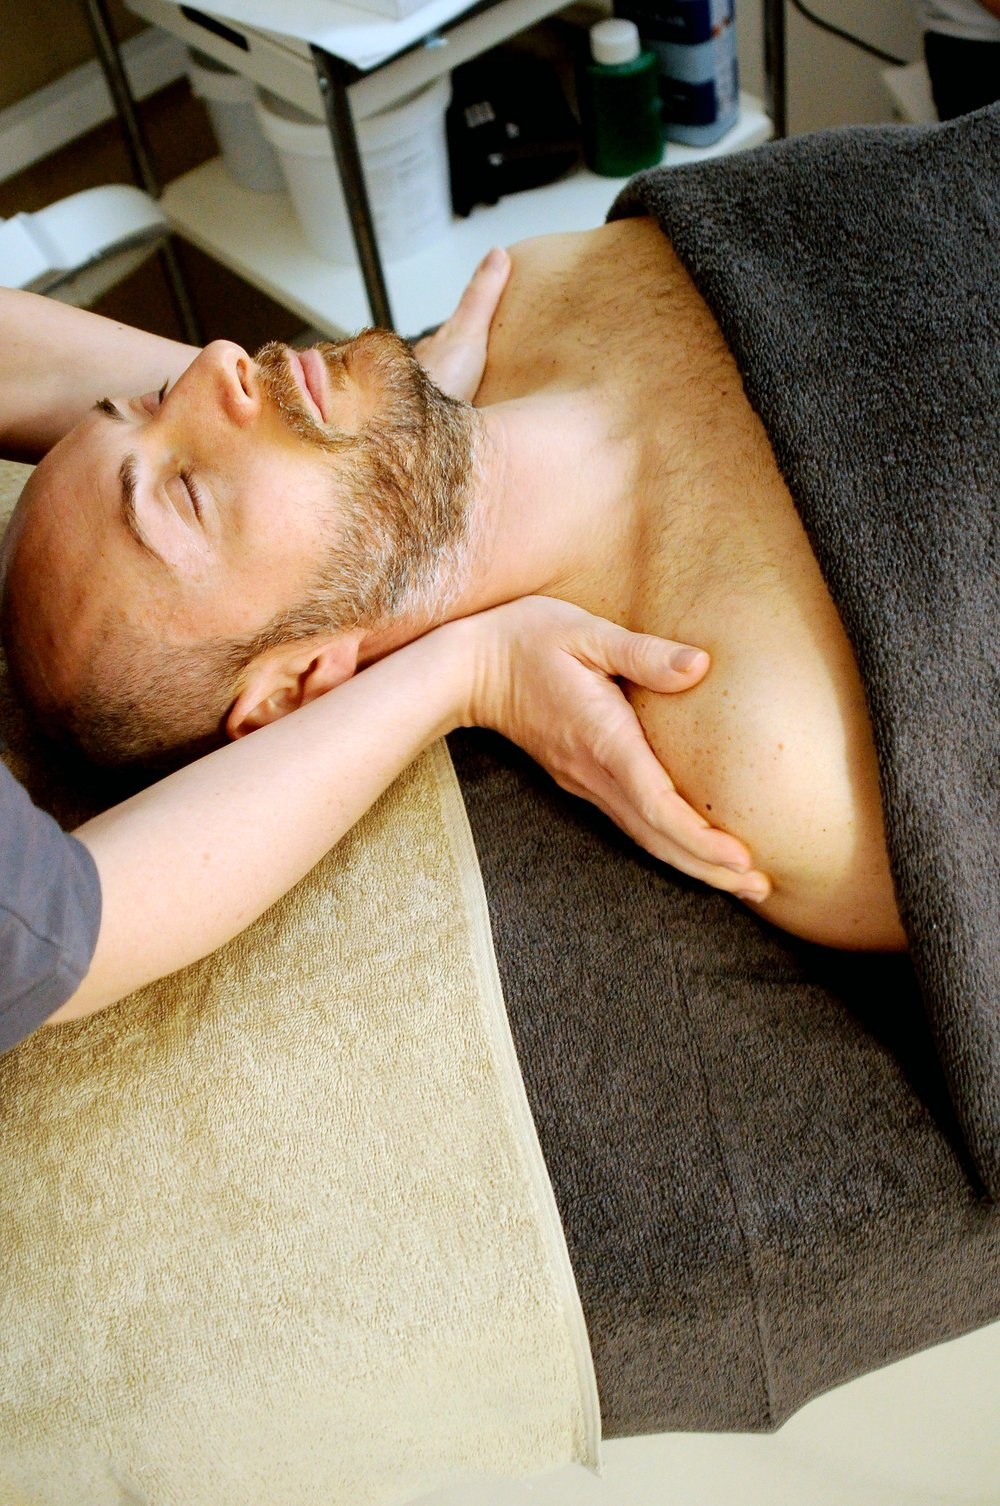 Therapeutic technique for pain relief, body maintenance and injury prevention